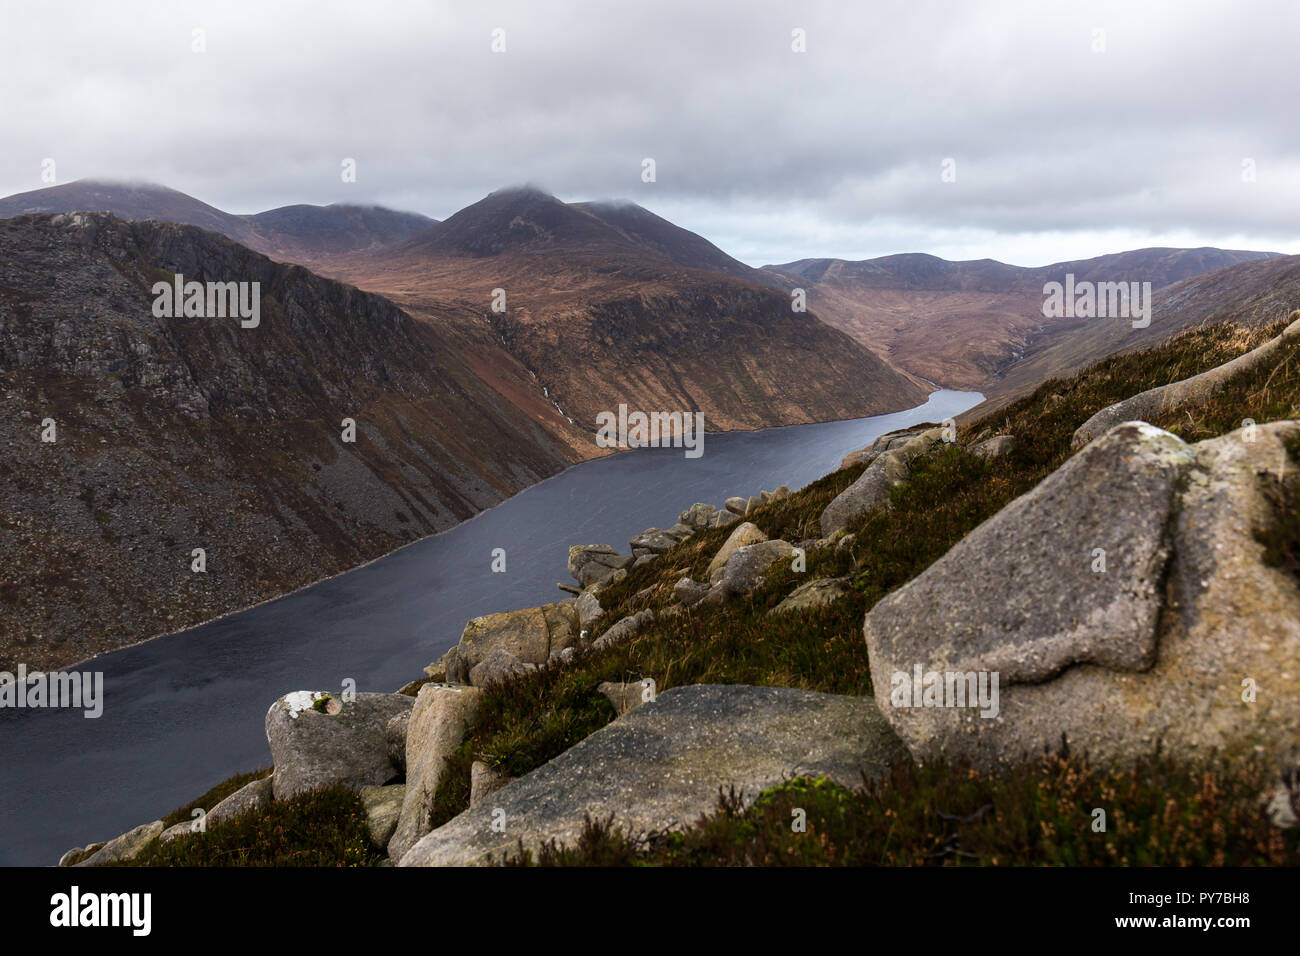 View of Ben Crom mountain and reservoir looking towards Slieve Bearnagh in cloud from lower slopes of Slieve Binnian. Doan mountain on left. Mourne Mo - Stock Image